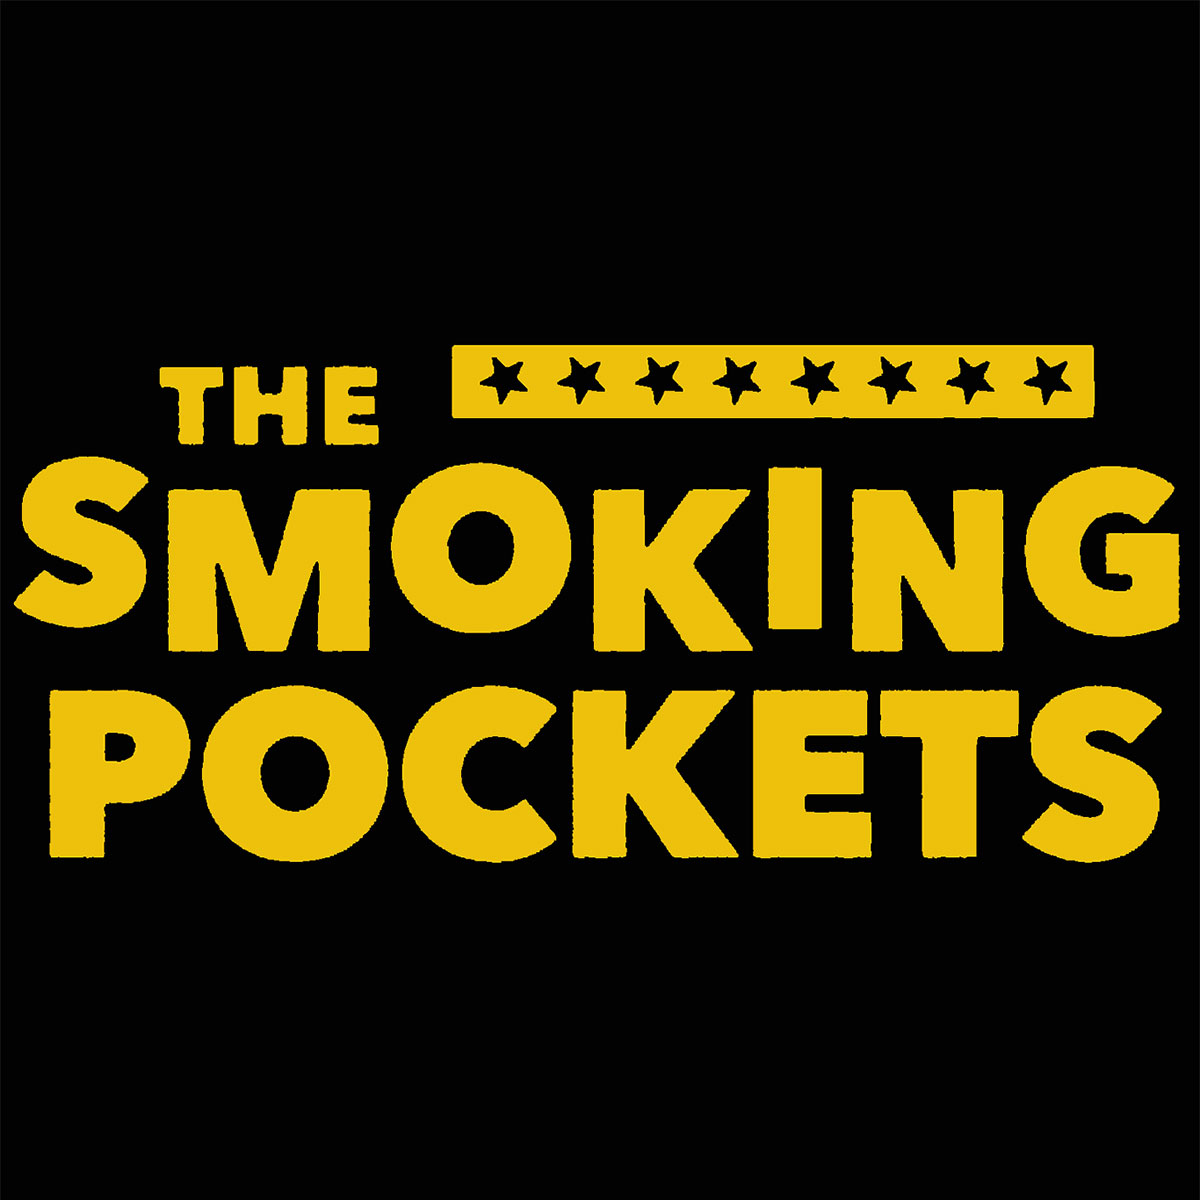 The Smoking Pockets